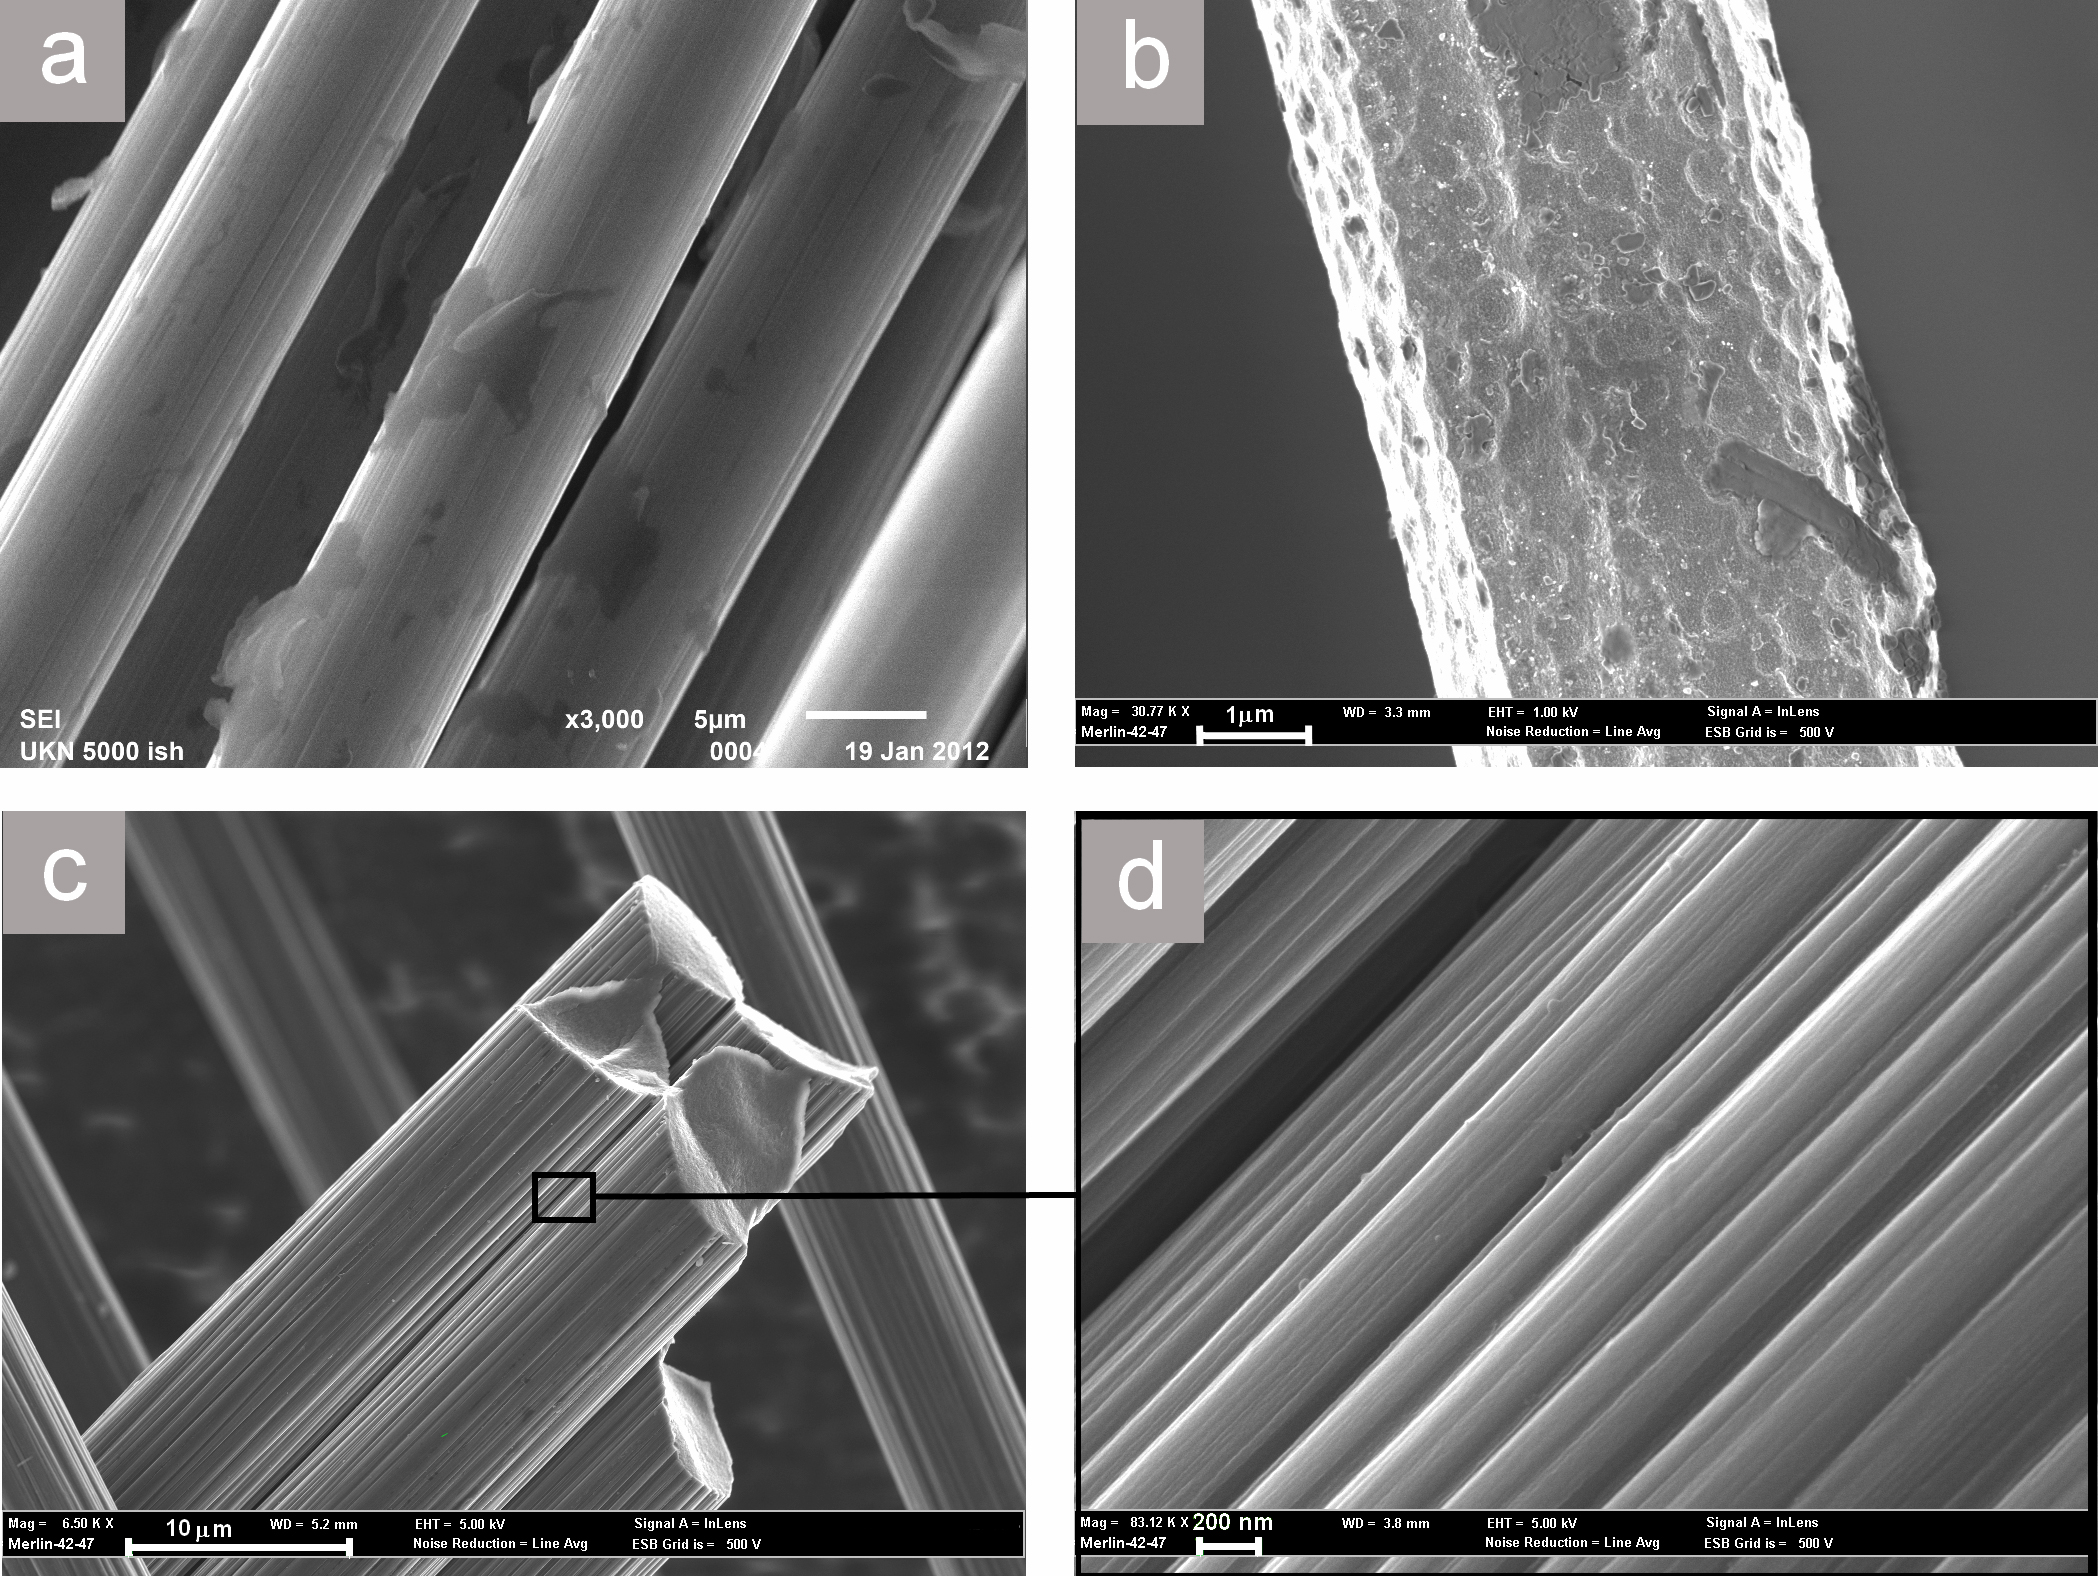 UHMWPE-matrix composites reinforced with short carbon fibers